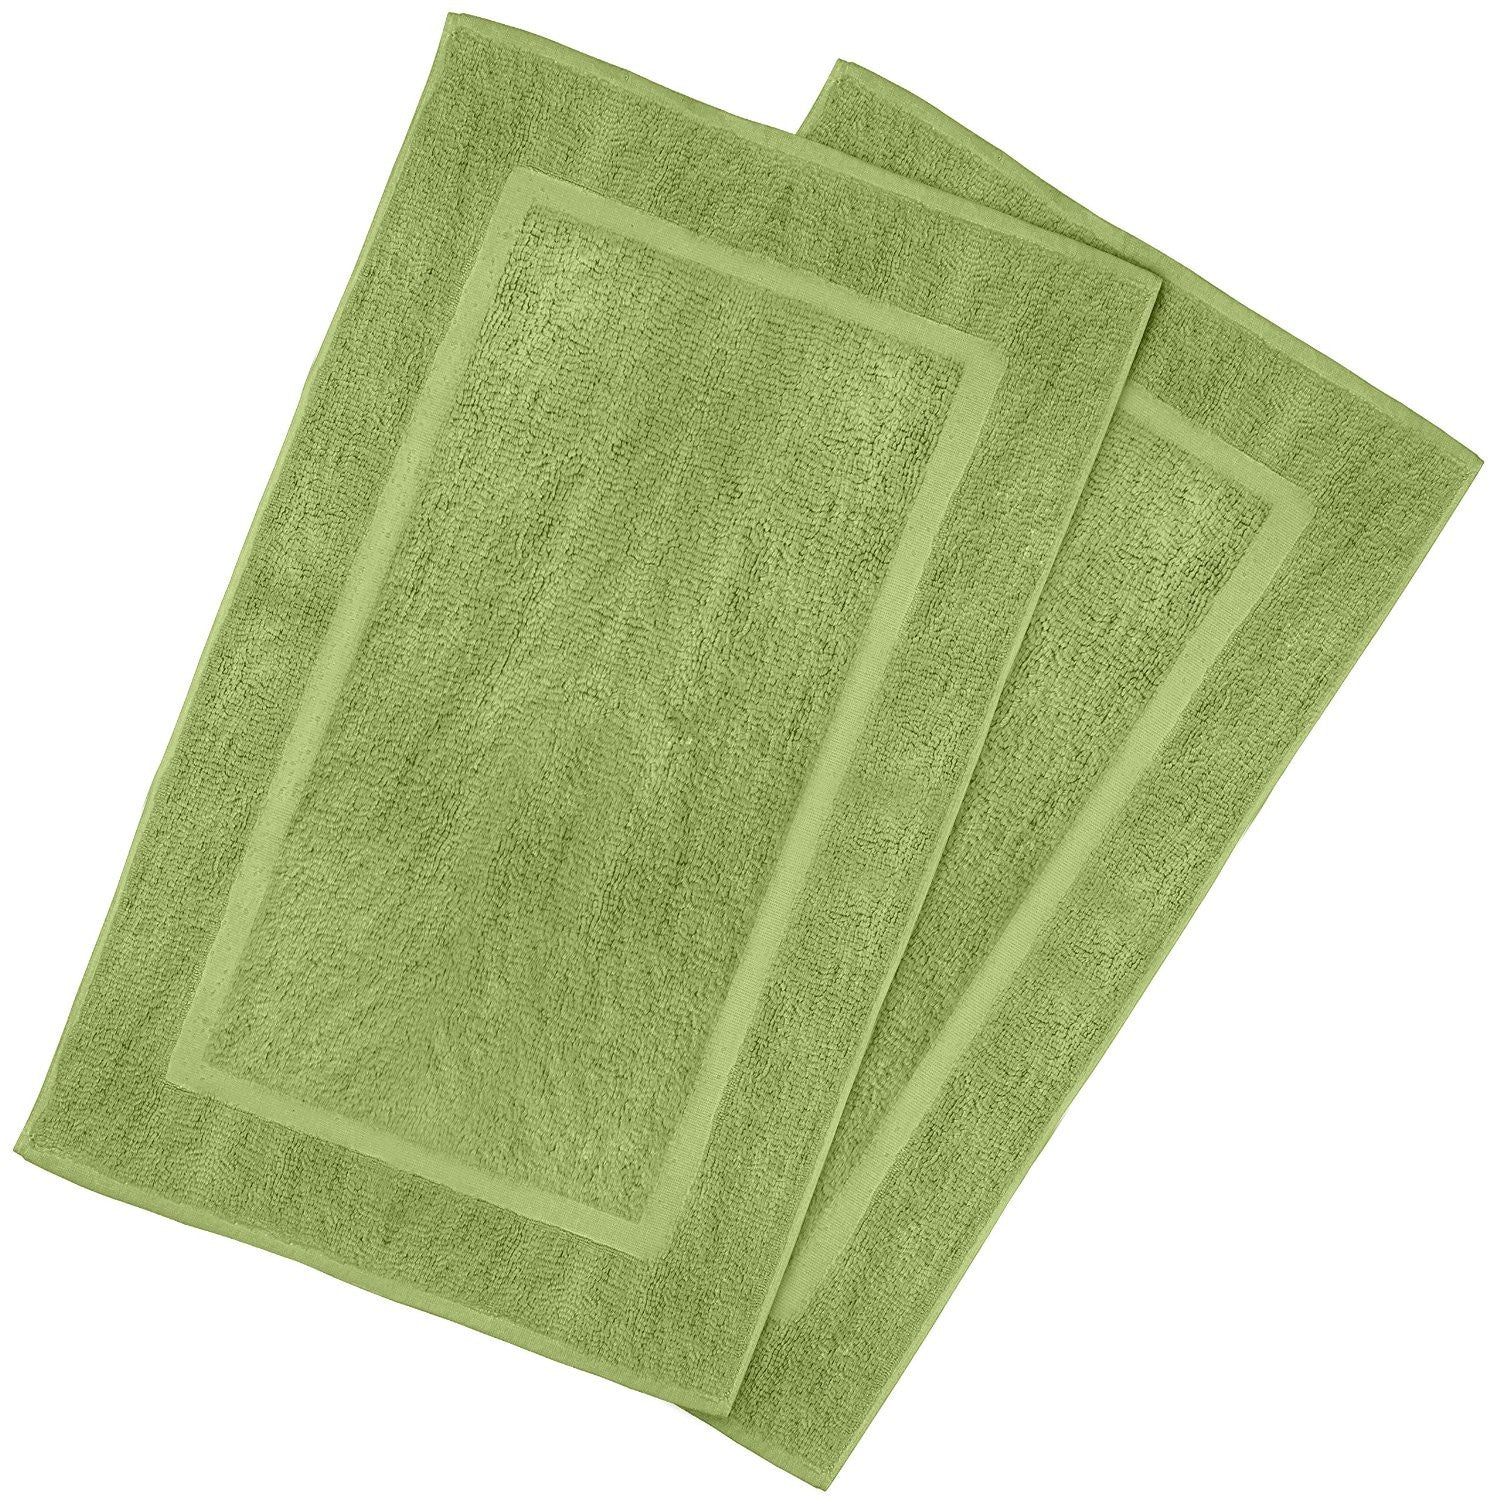 Luxury Bath Mat (Sage Green-2 Pack)